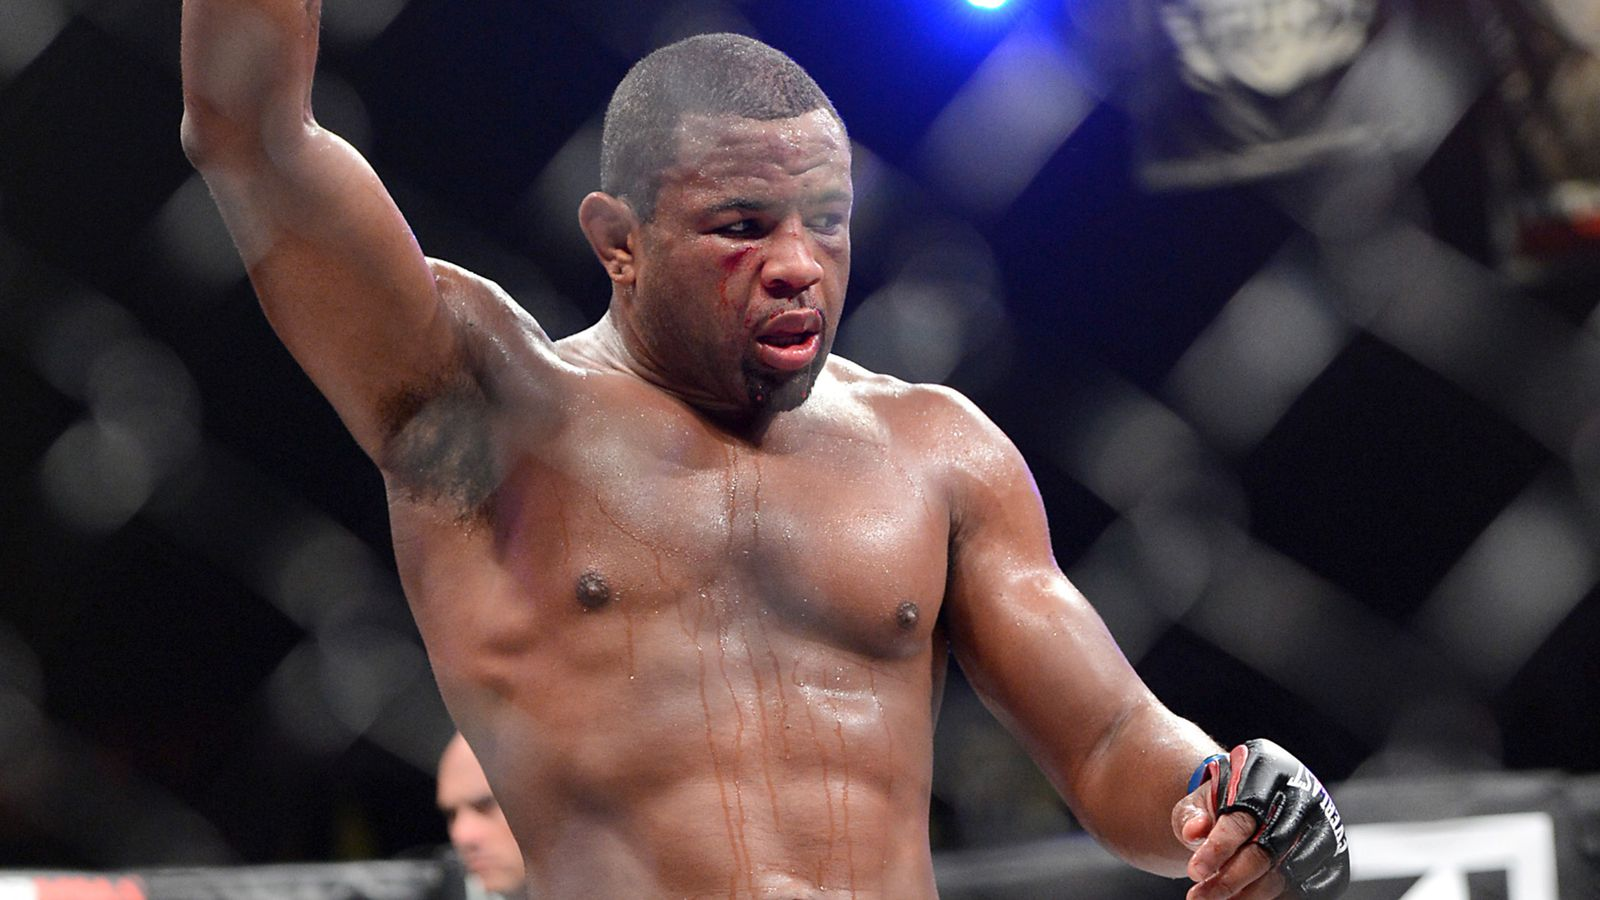 Bellator 130 results and highlights: Newton retains title